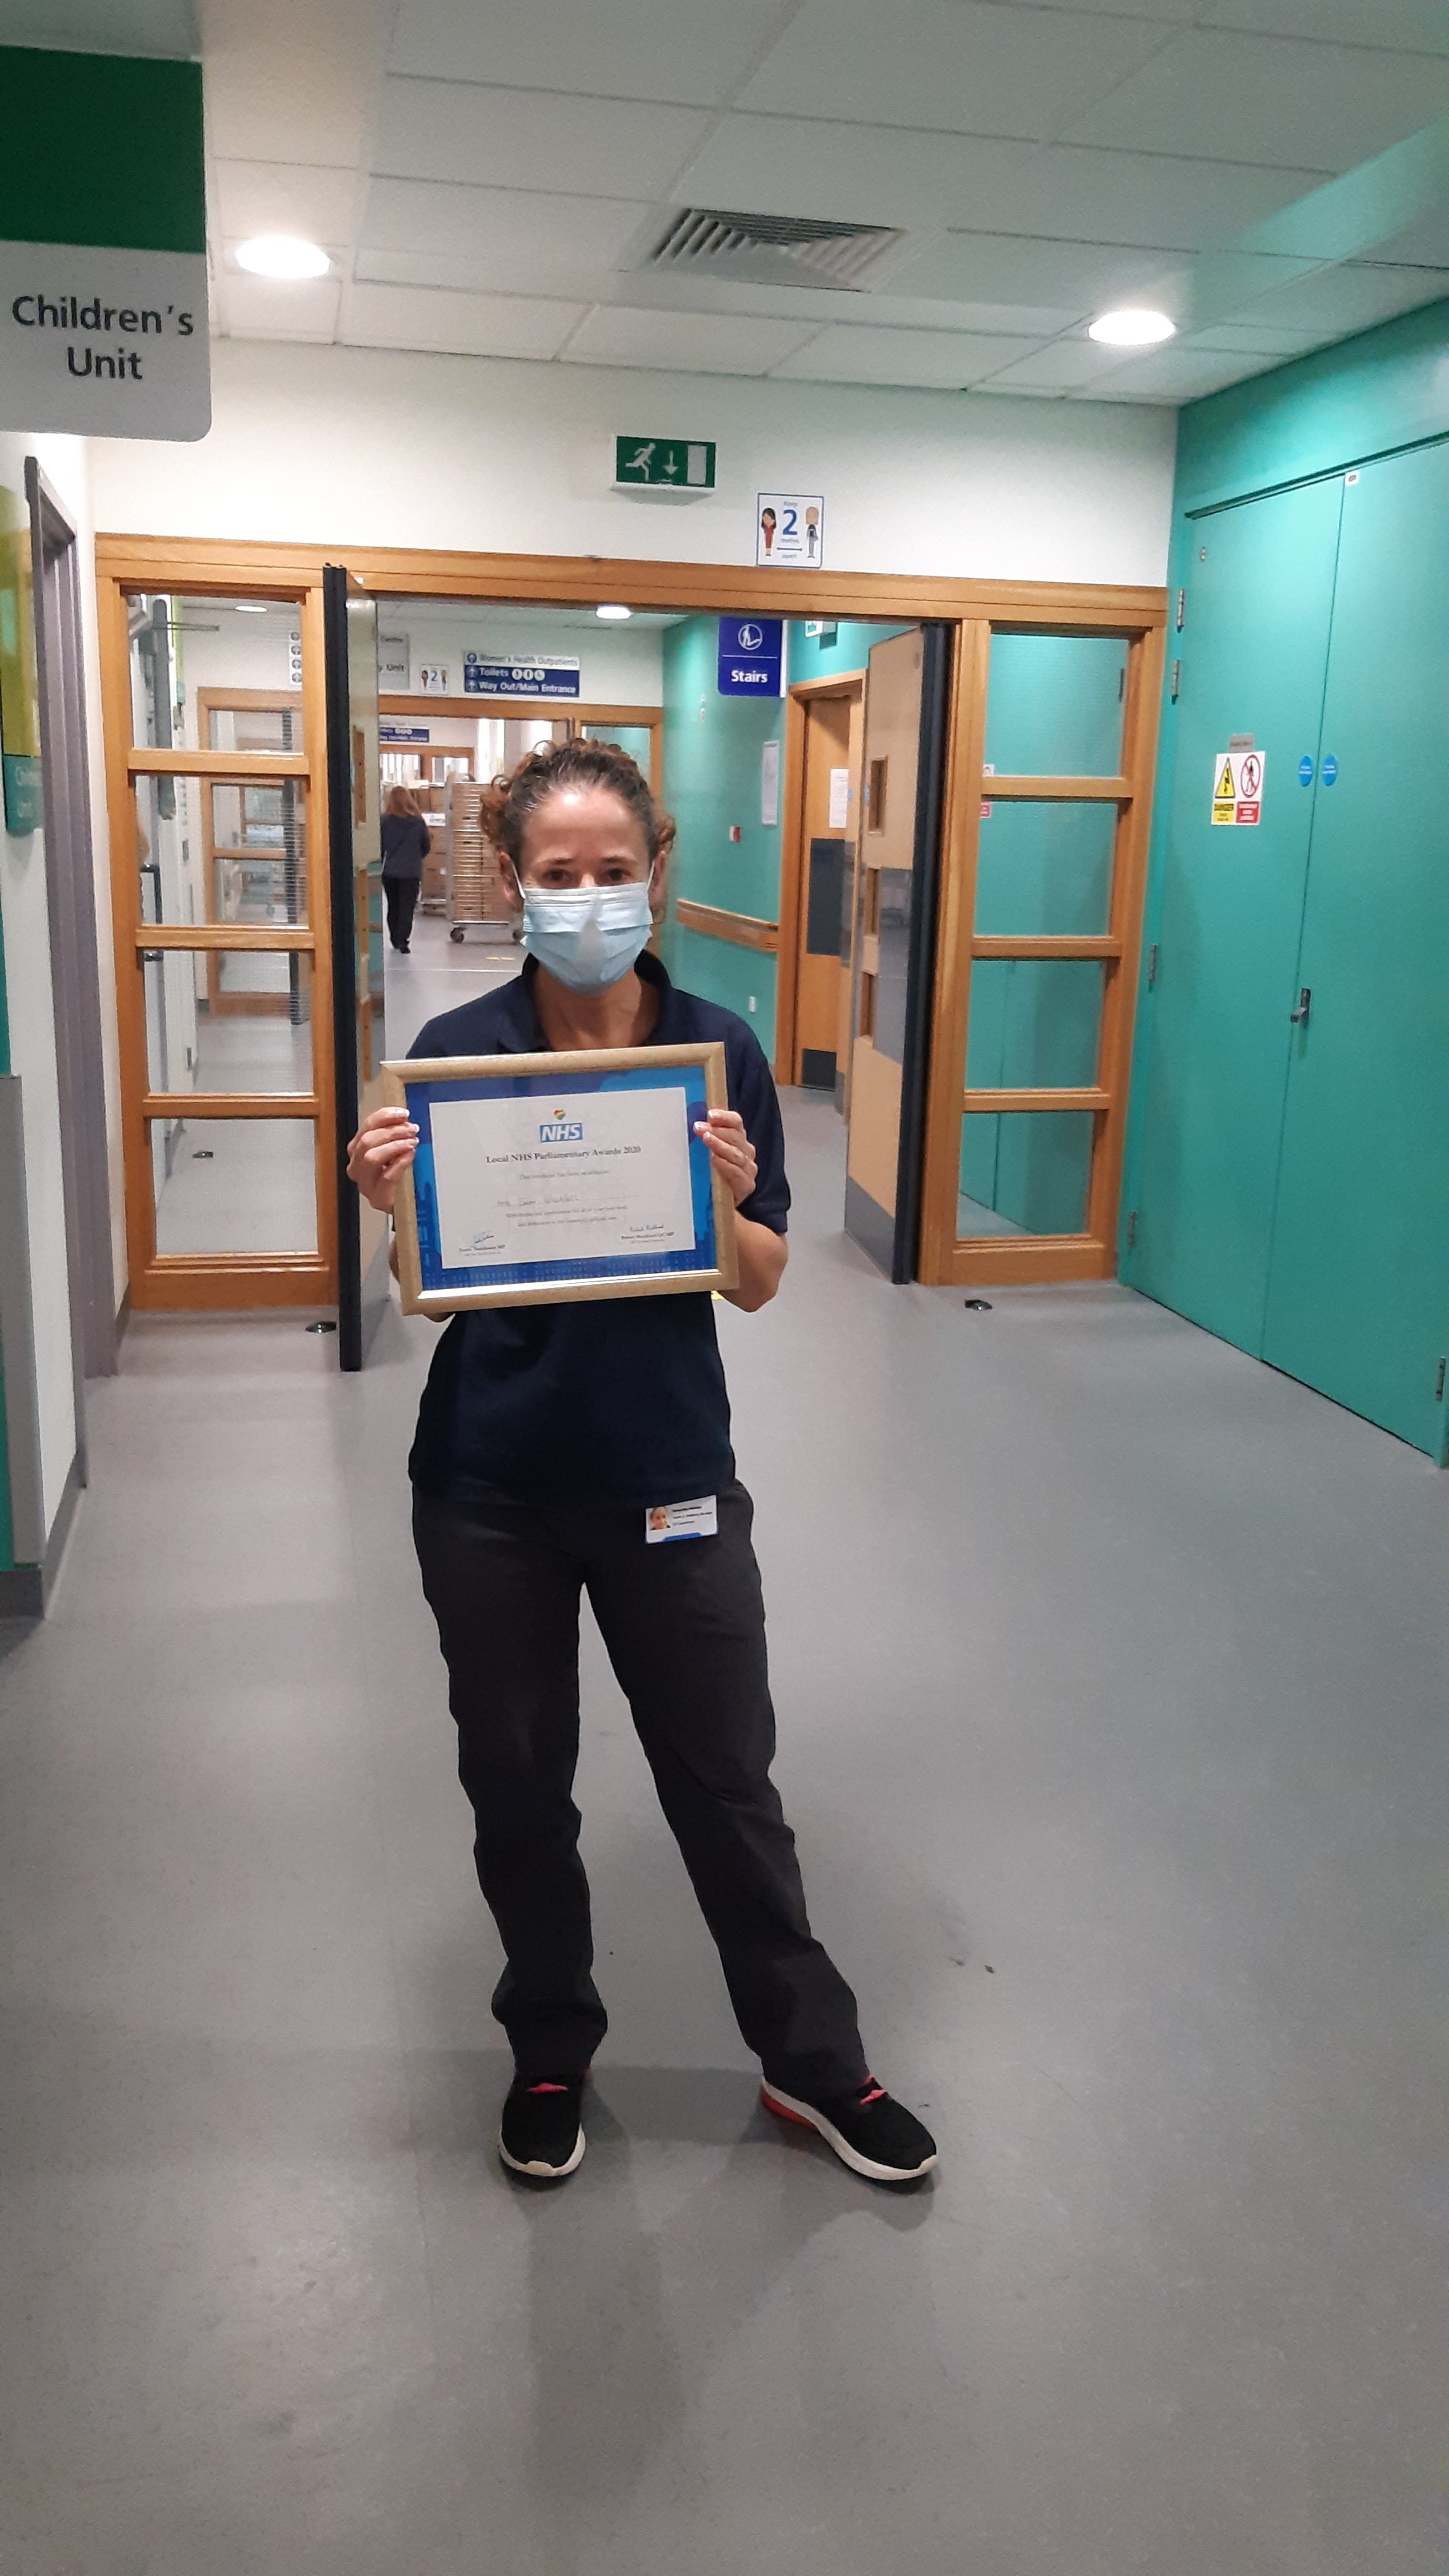 Health and Wellbeing Project Manager at Great Western Hospital wins regional Parliamentary Award